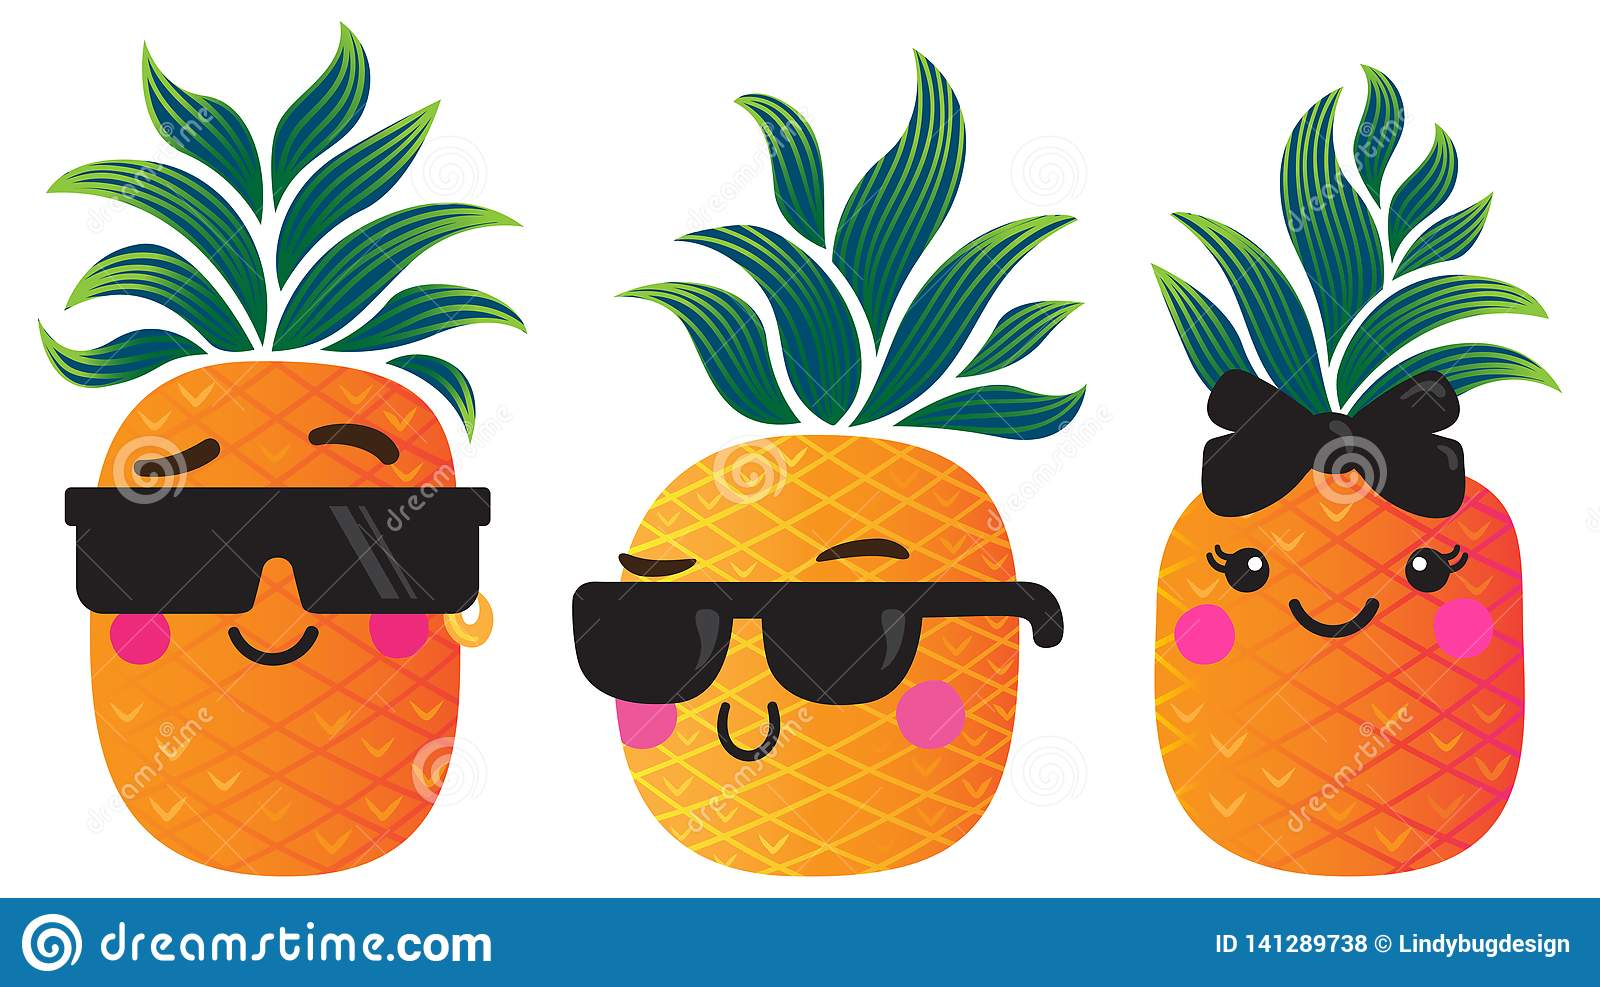 Funky Cartoon Pineapples With Groovy Leaves Stock Vector ...